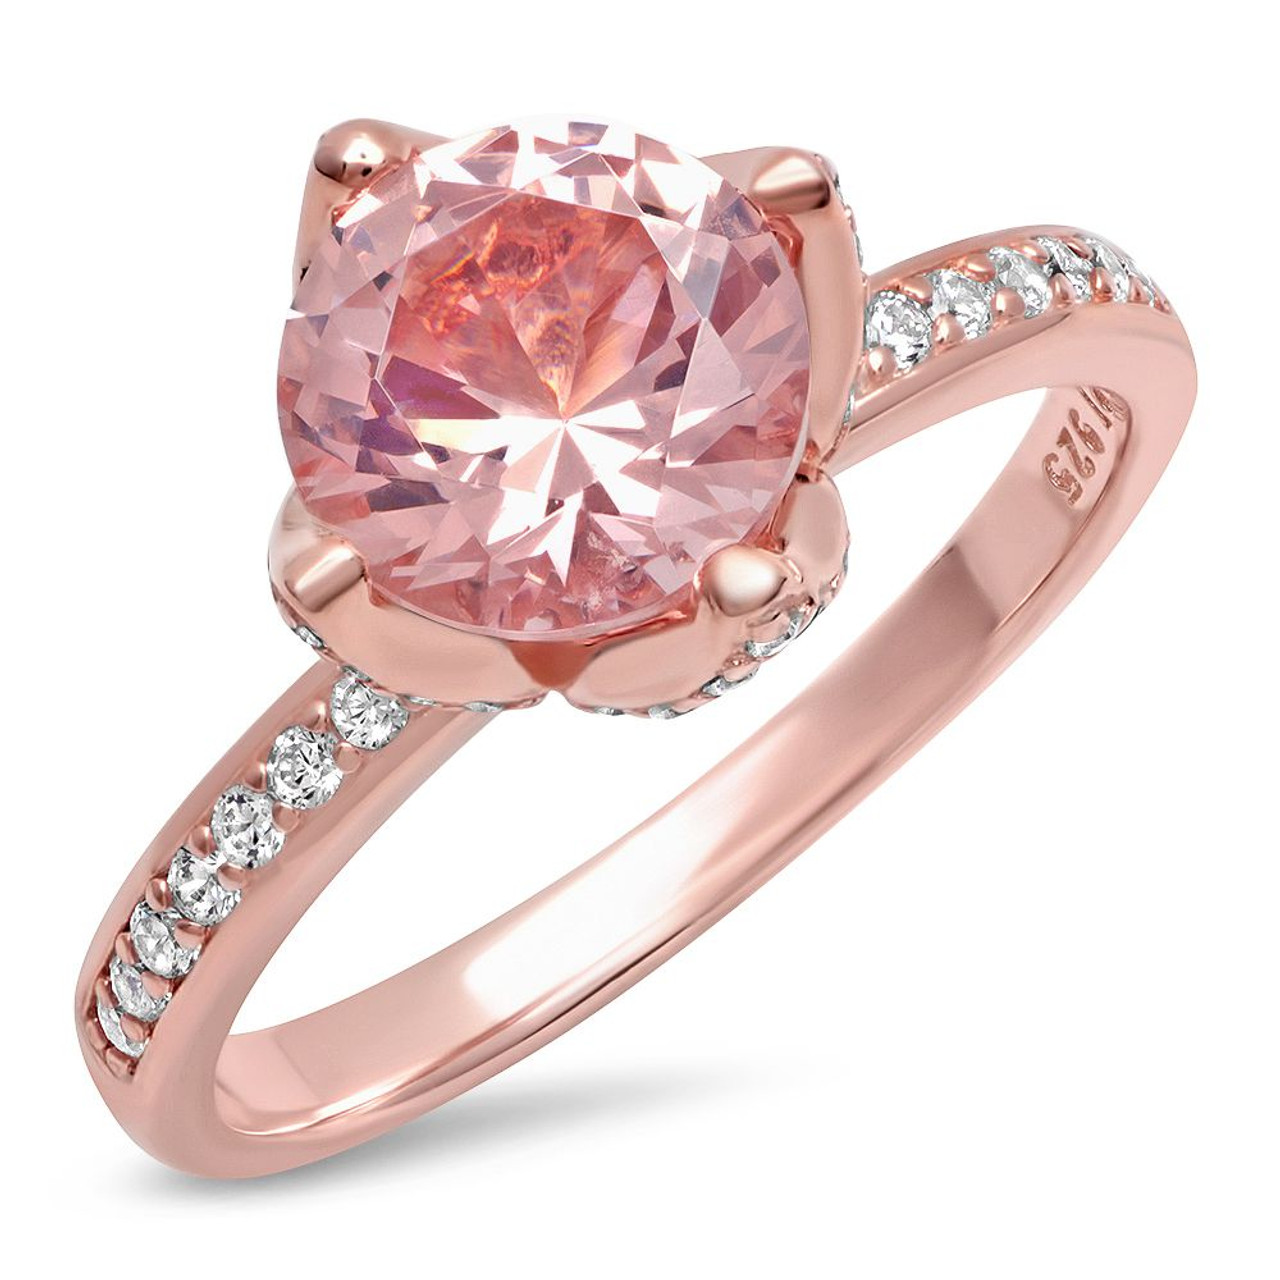 women/'s jewelry Single Lined Stainless Steel Ring Rose Gold IP fashion CZ